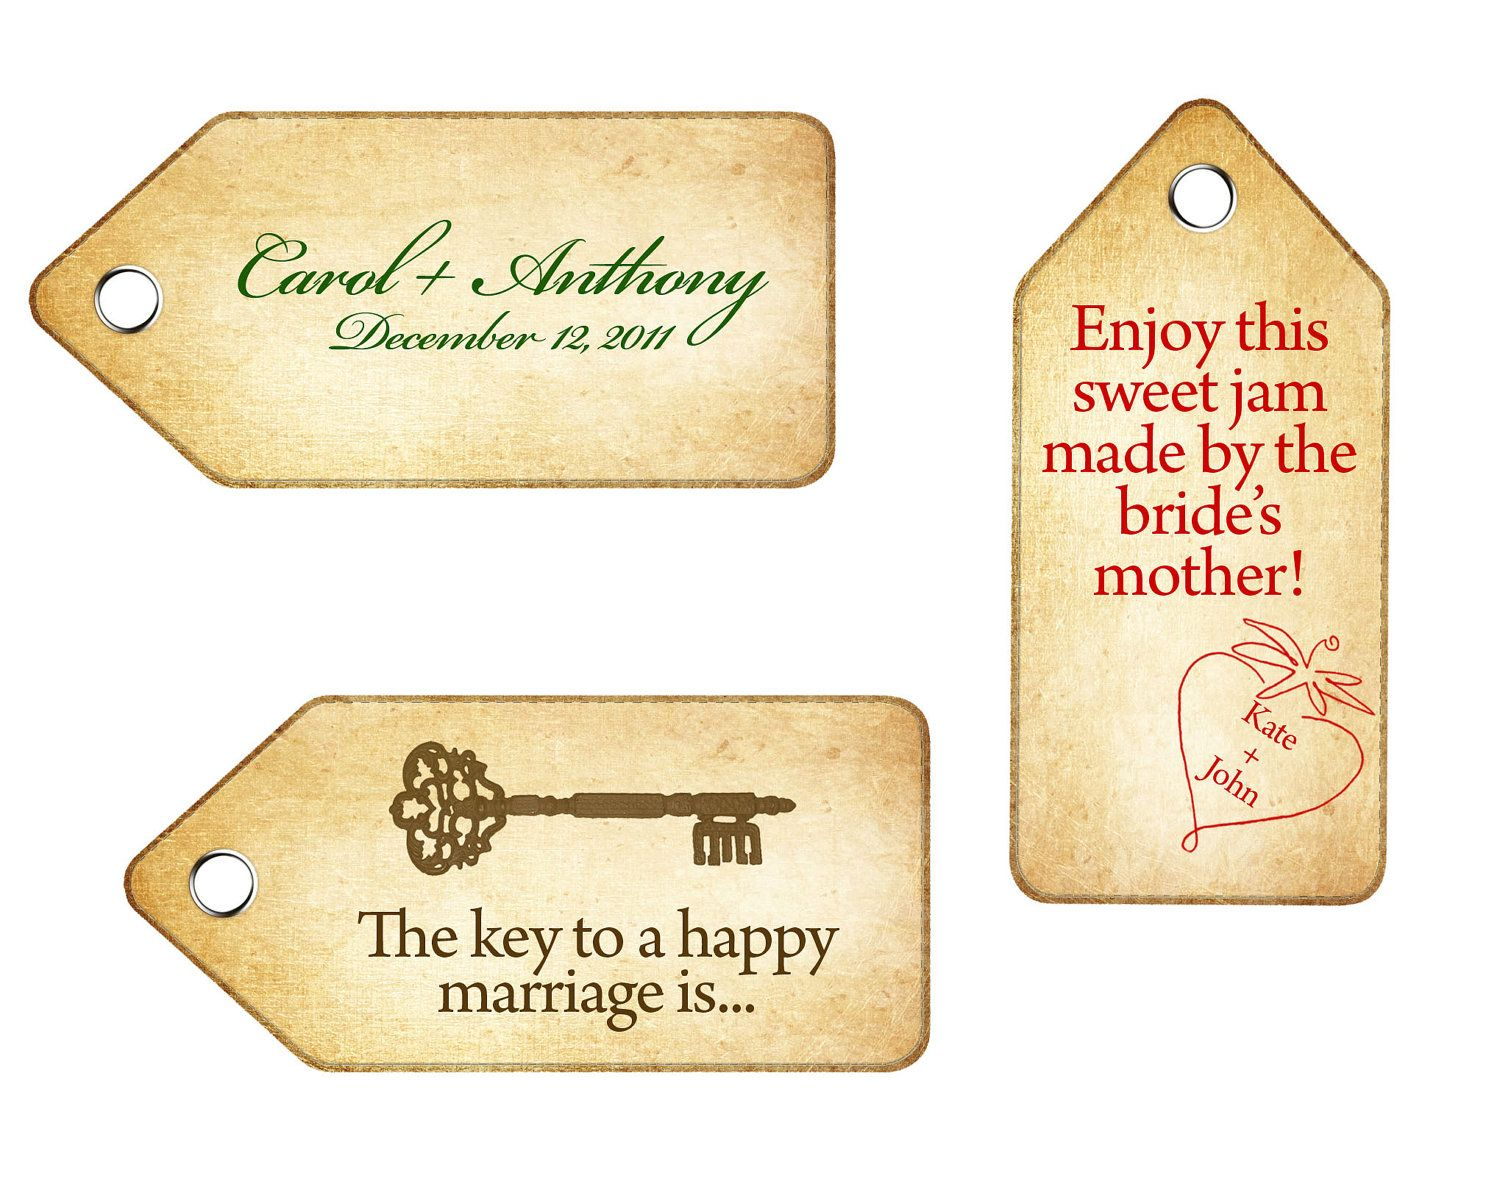 Custom Printable DIY Wedding Tag Downloads - use for favors, thank ...